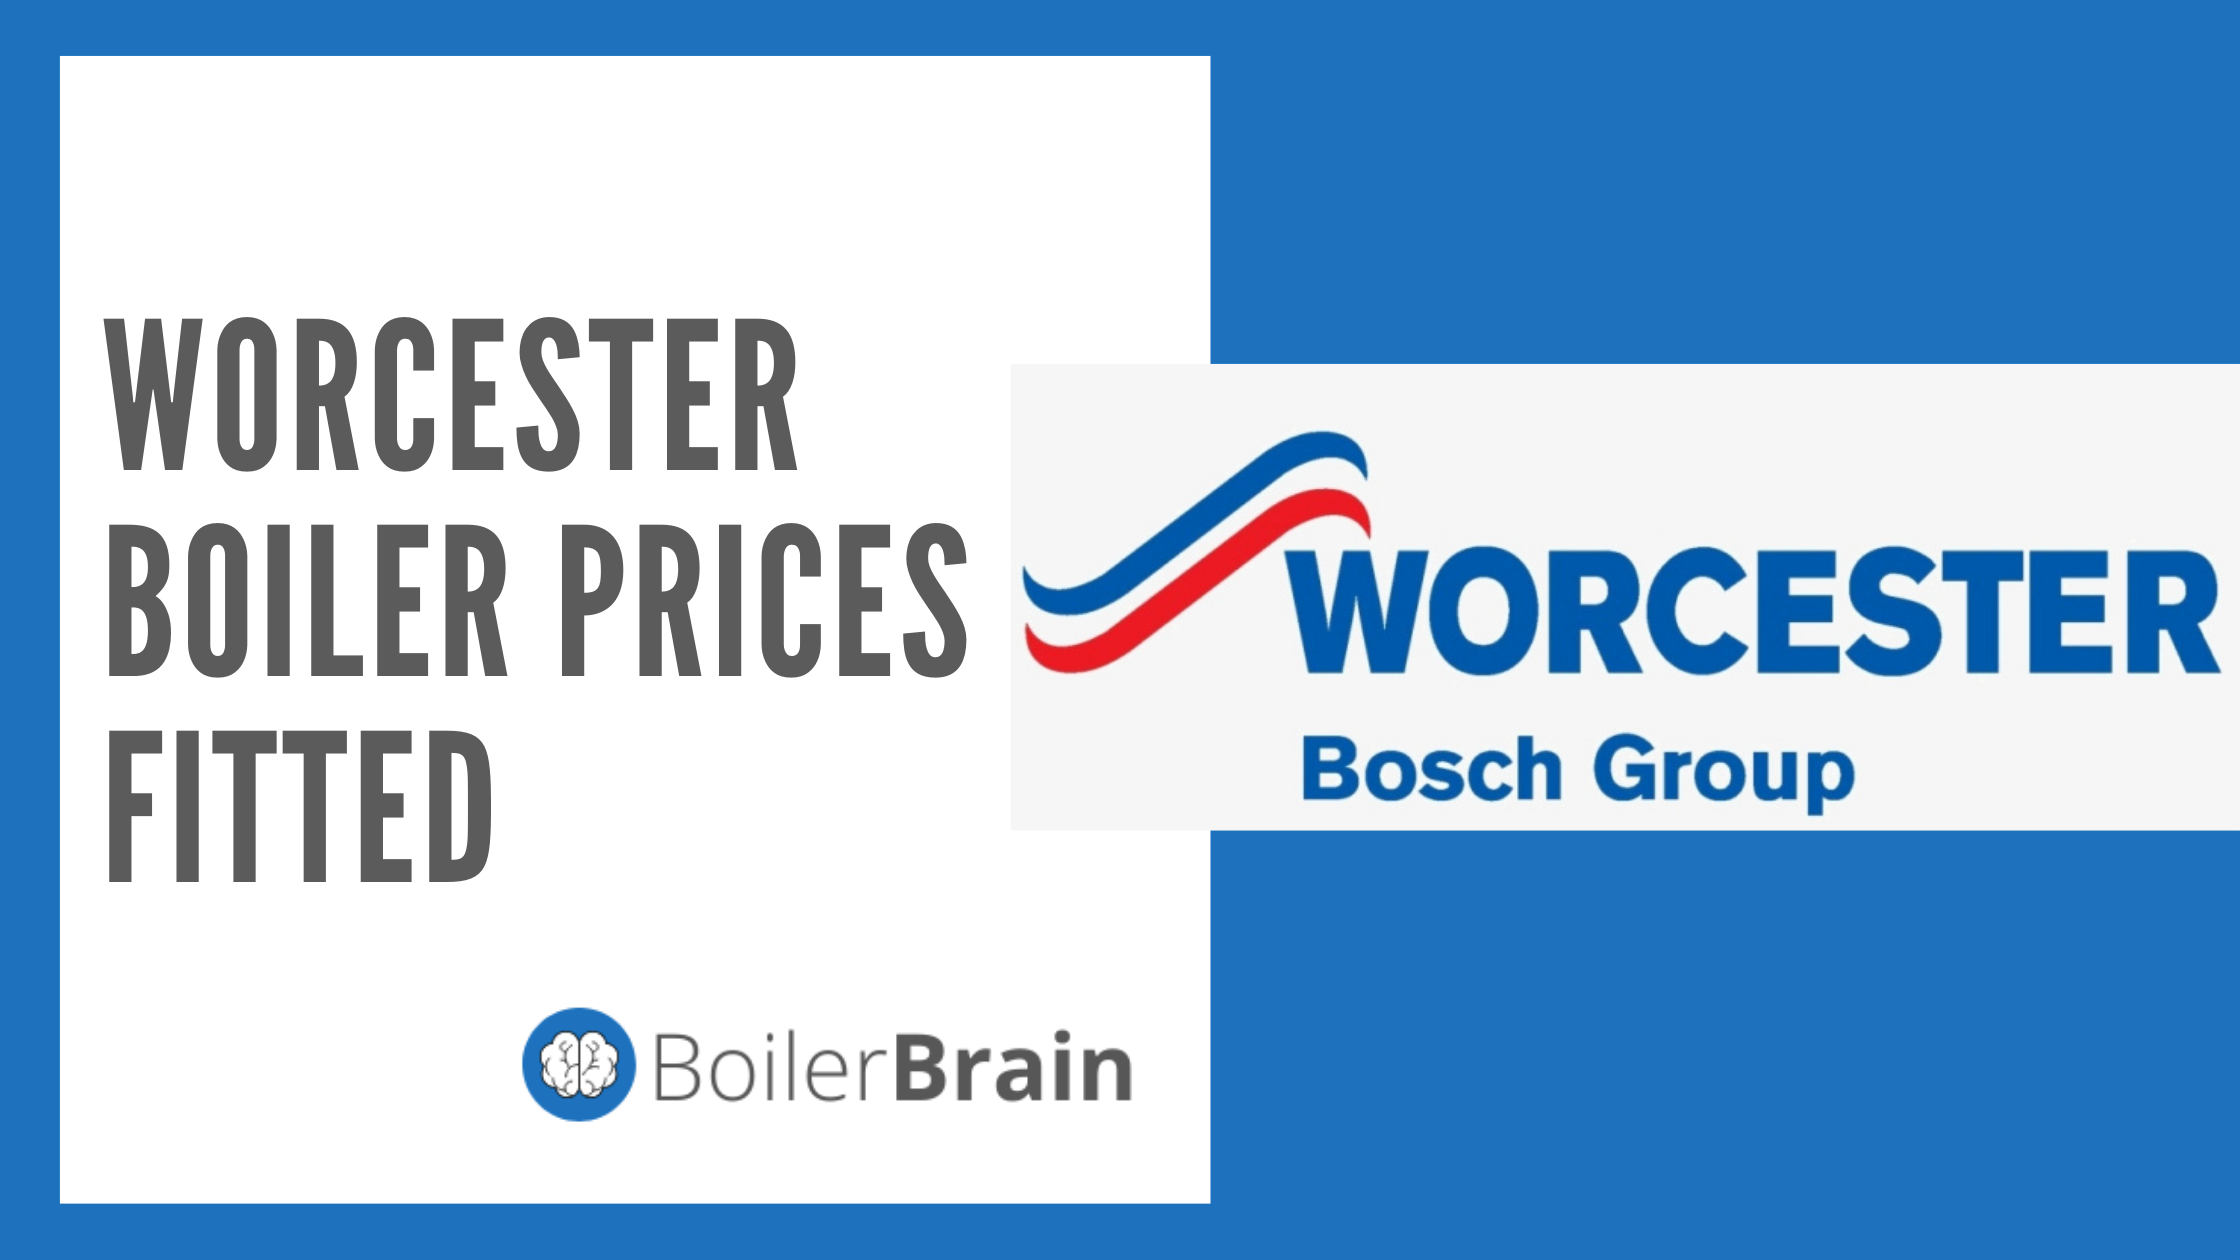 Worcester Boiler Prices Fitted